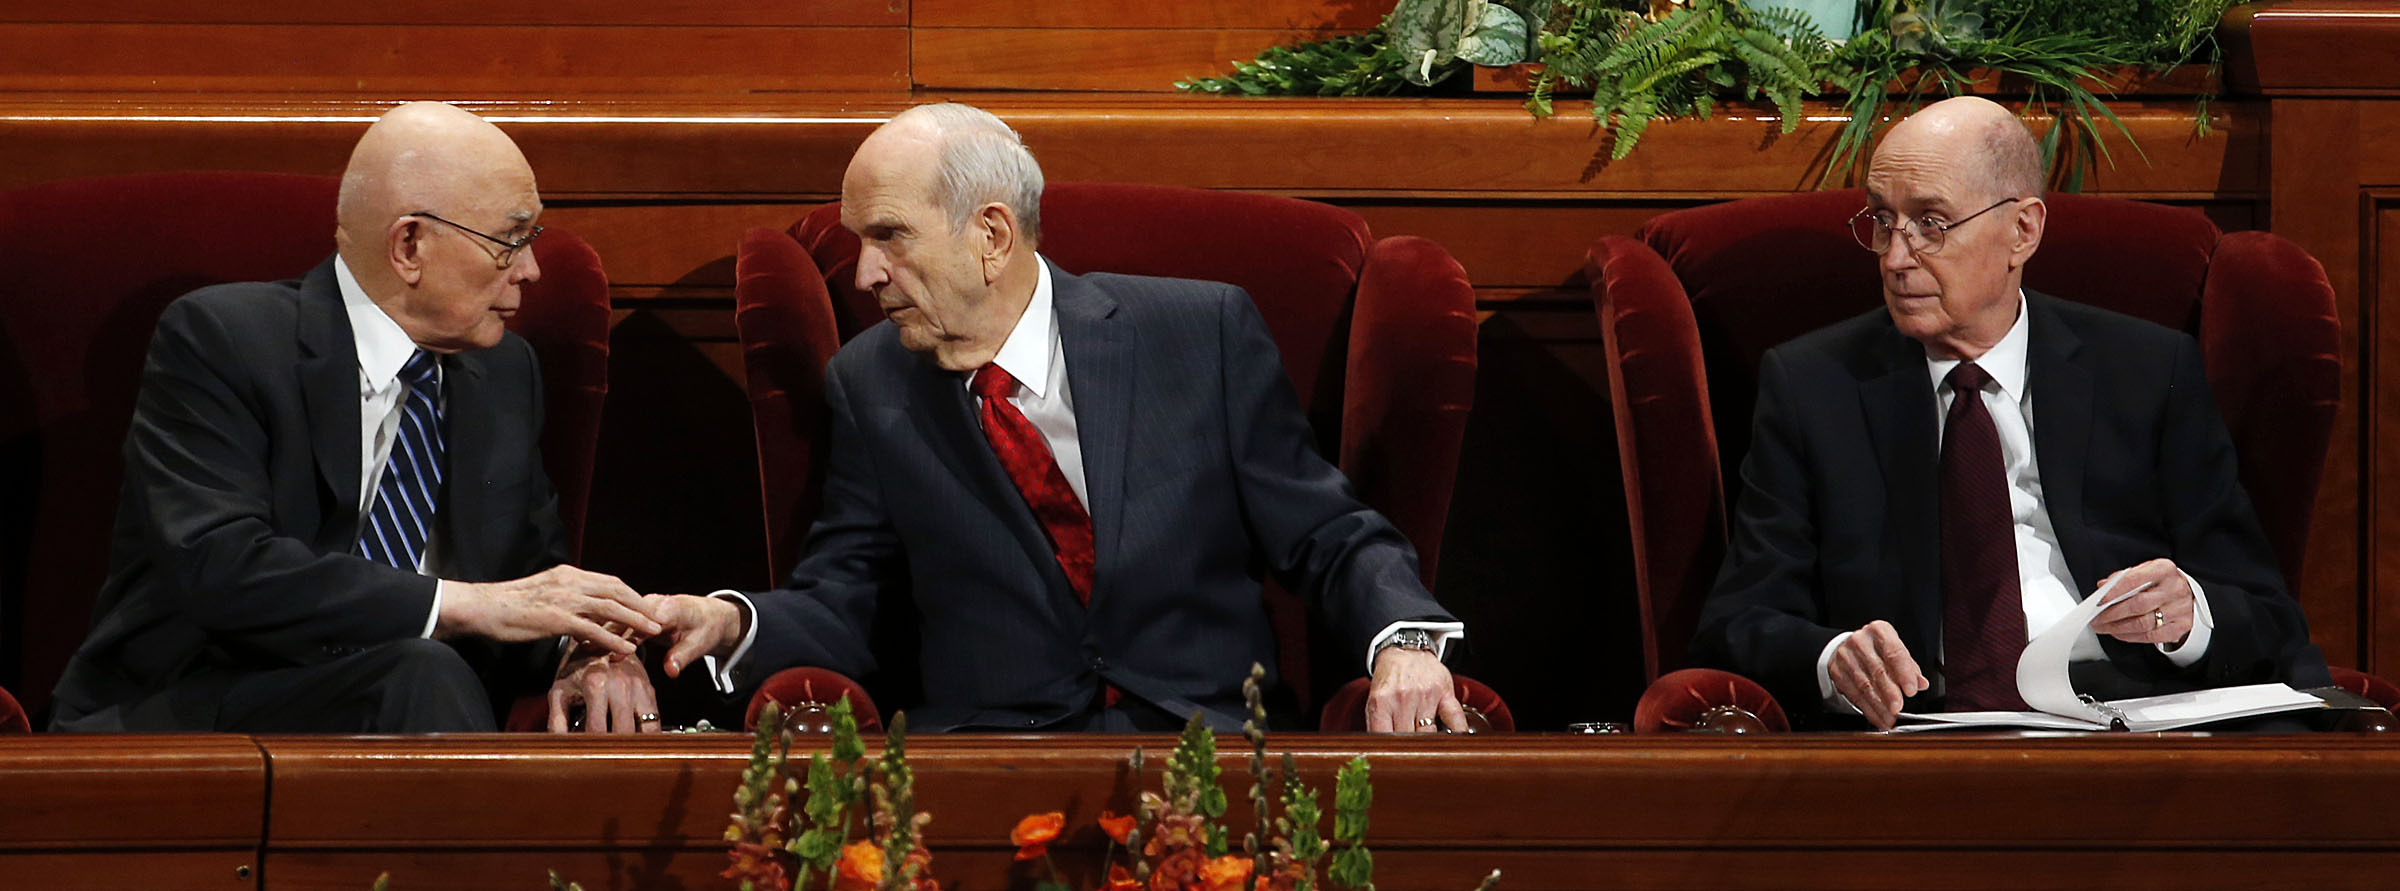 President Russell M. Nelson of The Church of Jesus Christ of Latter-day Saints, center, and his counselors, President Dallin H. Oaks, first counselor in the First Presidency, left, and President Henry B. Eyring, second counselor in the First Presidency, right, confer at the beginning of the Priesthood session of general conference in Salt Lake City on Saturday, April 6, 2019.